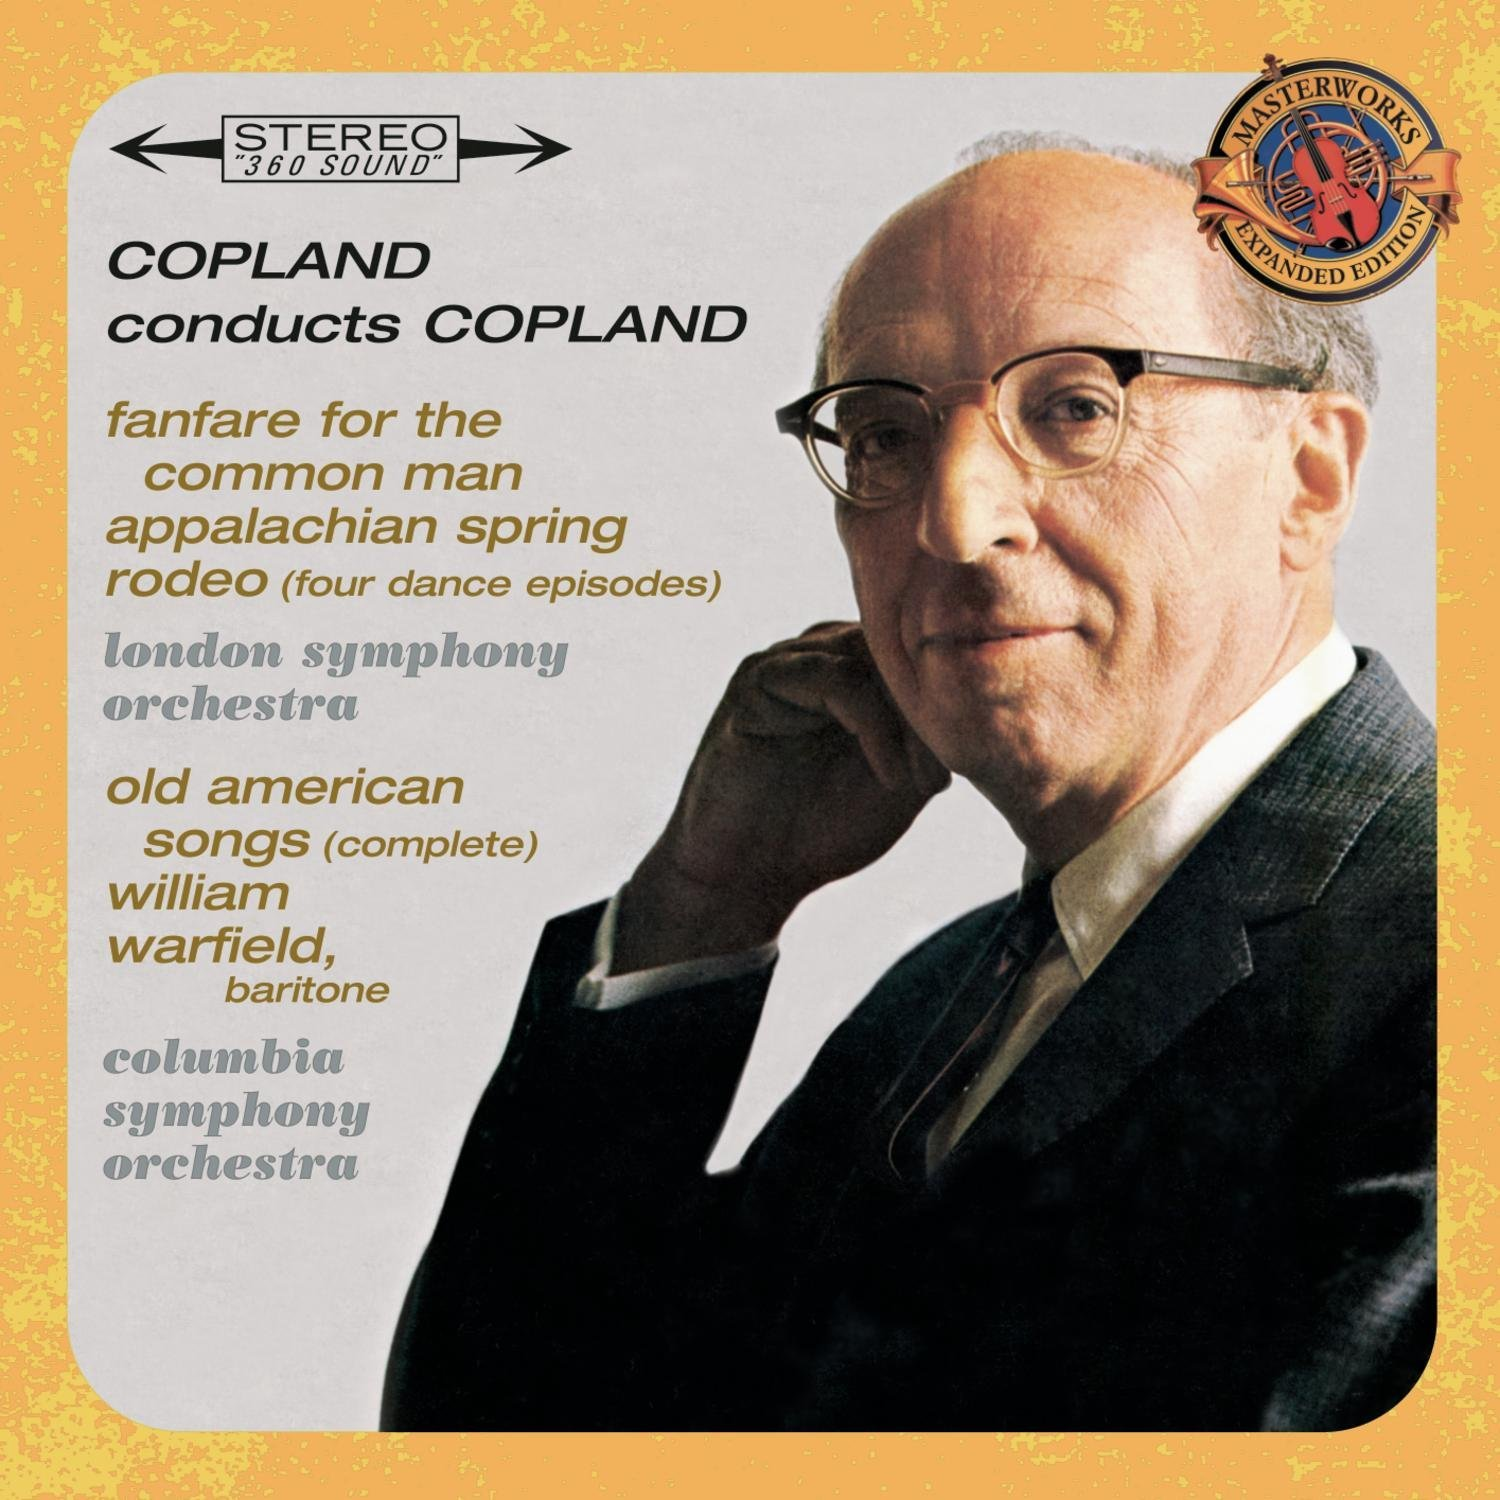 Copland Conducts Copland - Expanded Edition Fanfare for the Common Man, Appalachian Spring, Old American Songs Complete Rodeo: Four Dance Episodes